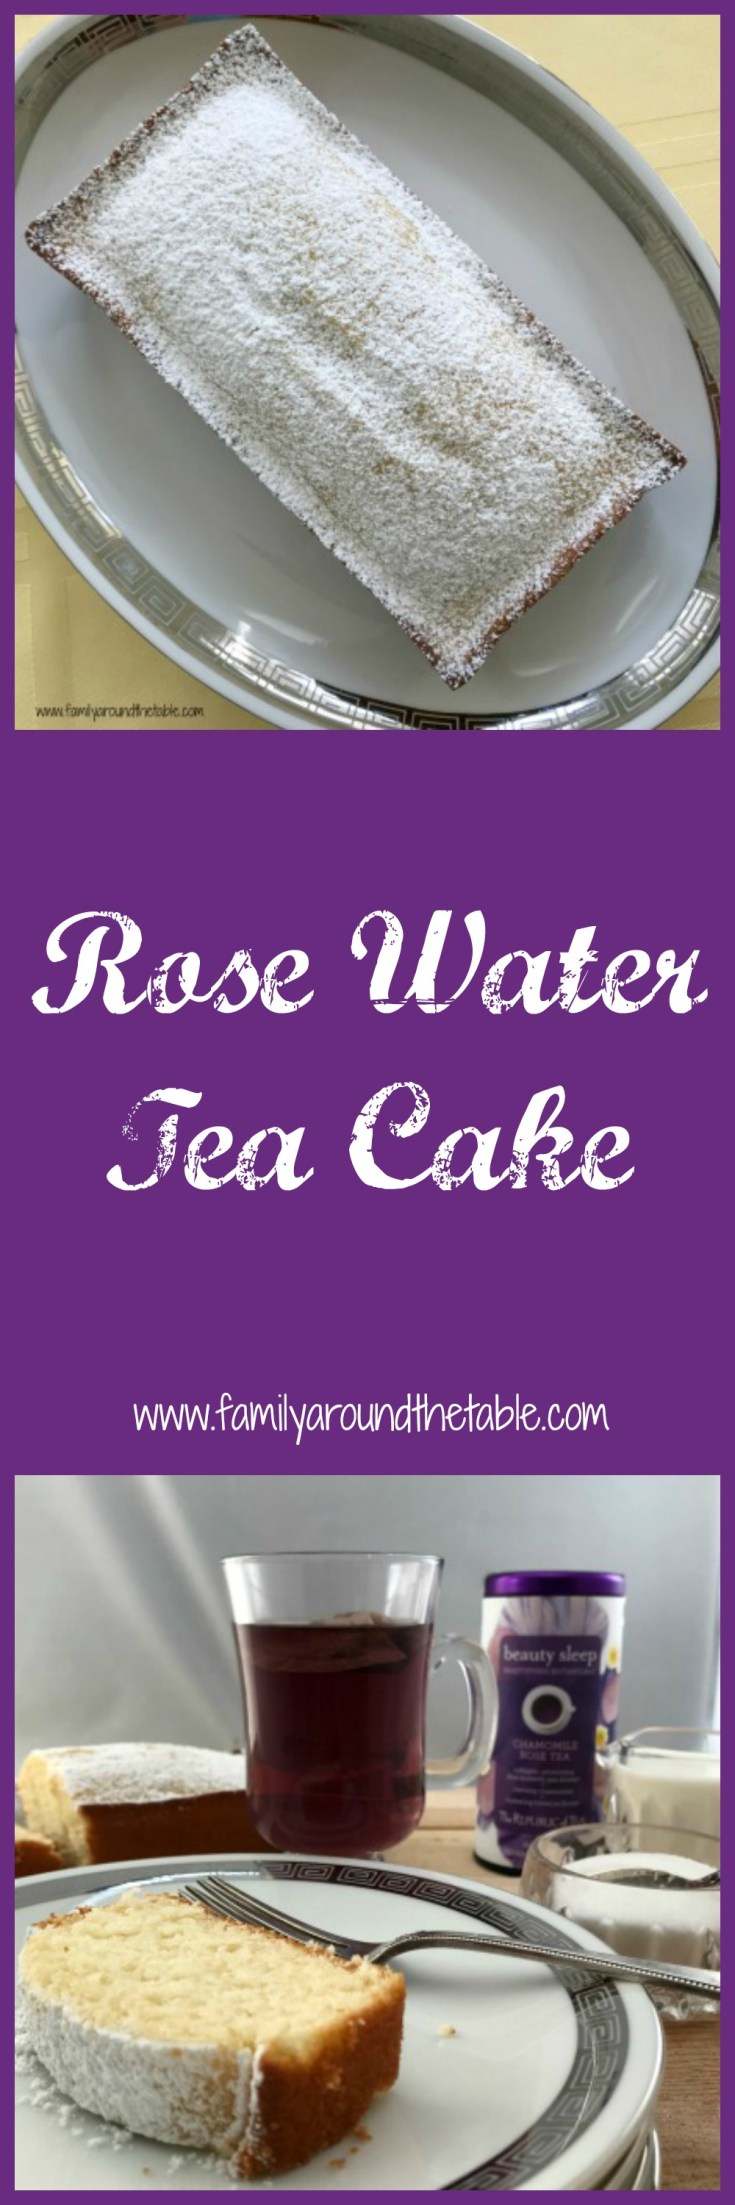 Rose water tea cake with a steaming cup of The Republic of Tea chamomile rose tea. #sipbysip #ad